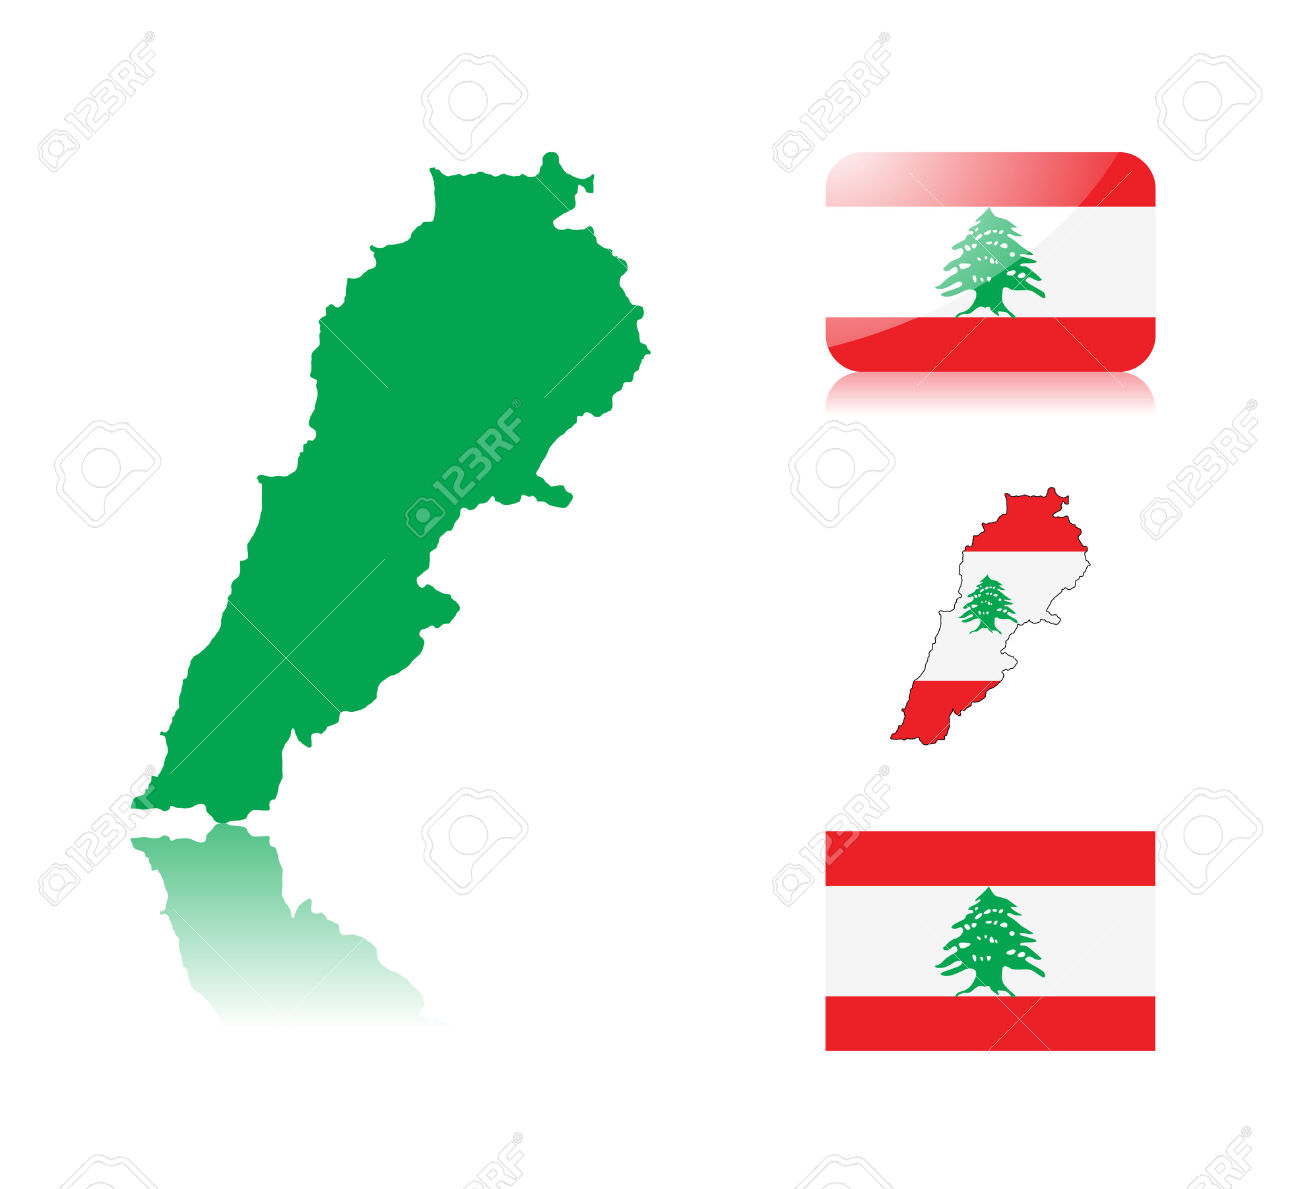 Lebanese Map Including: Map With Reflection, Map In Flag Colors.